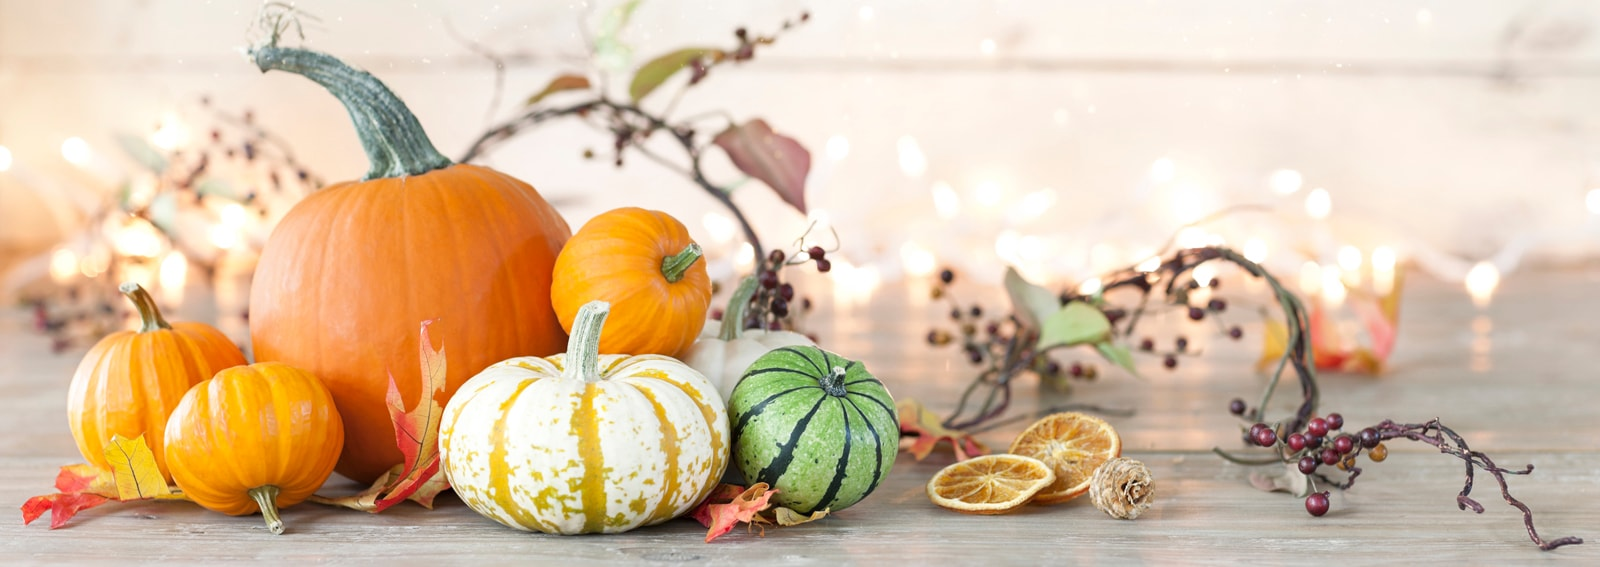 Autumn holiday pumpkin arrangement against an old white wood background